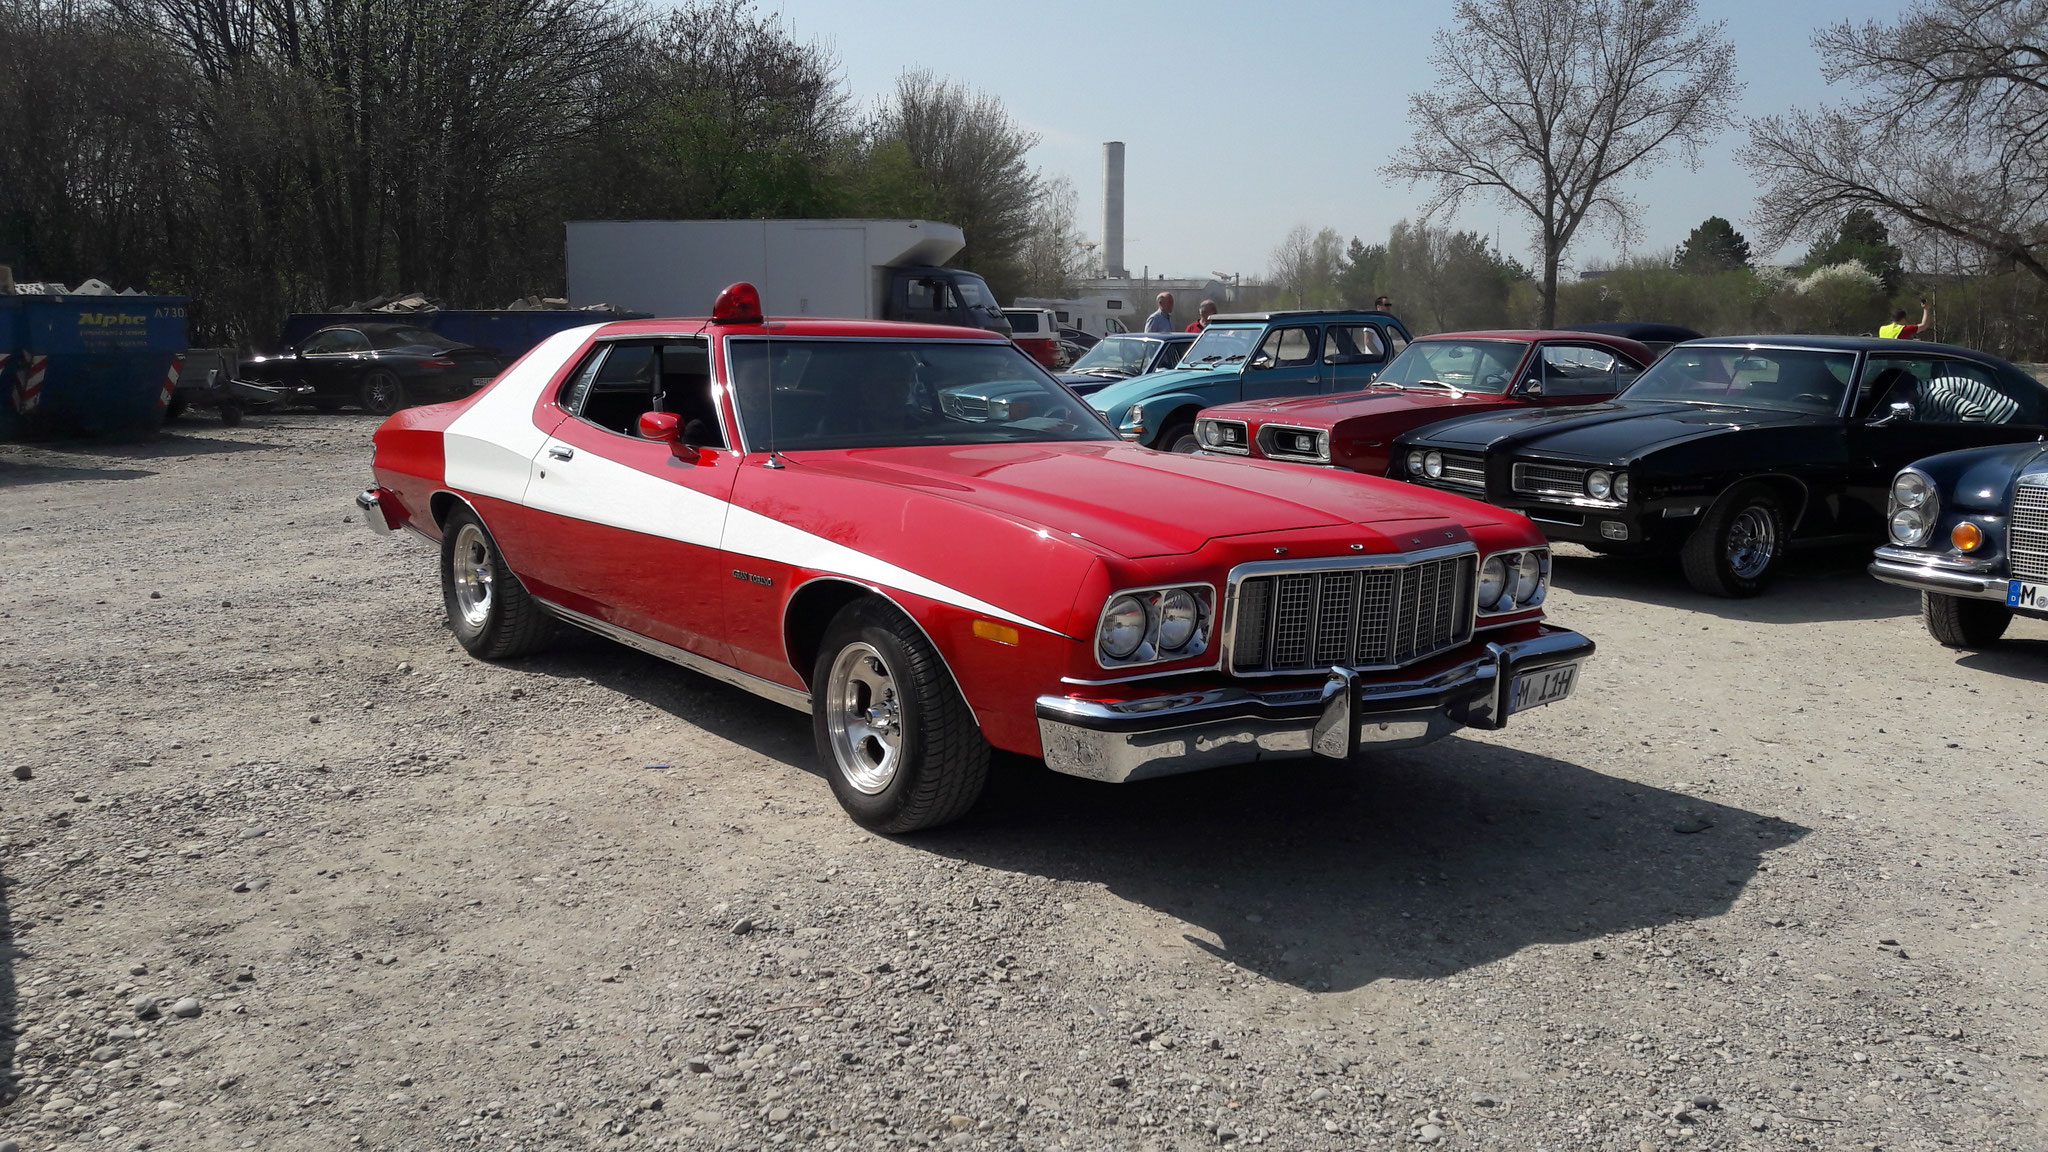 Ford Gran Torino (Starsky and Hutch) - M-I-1H